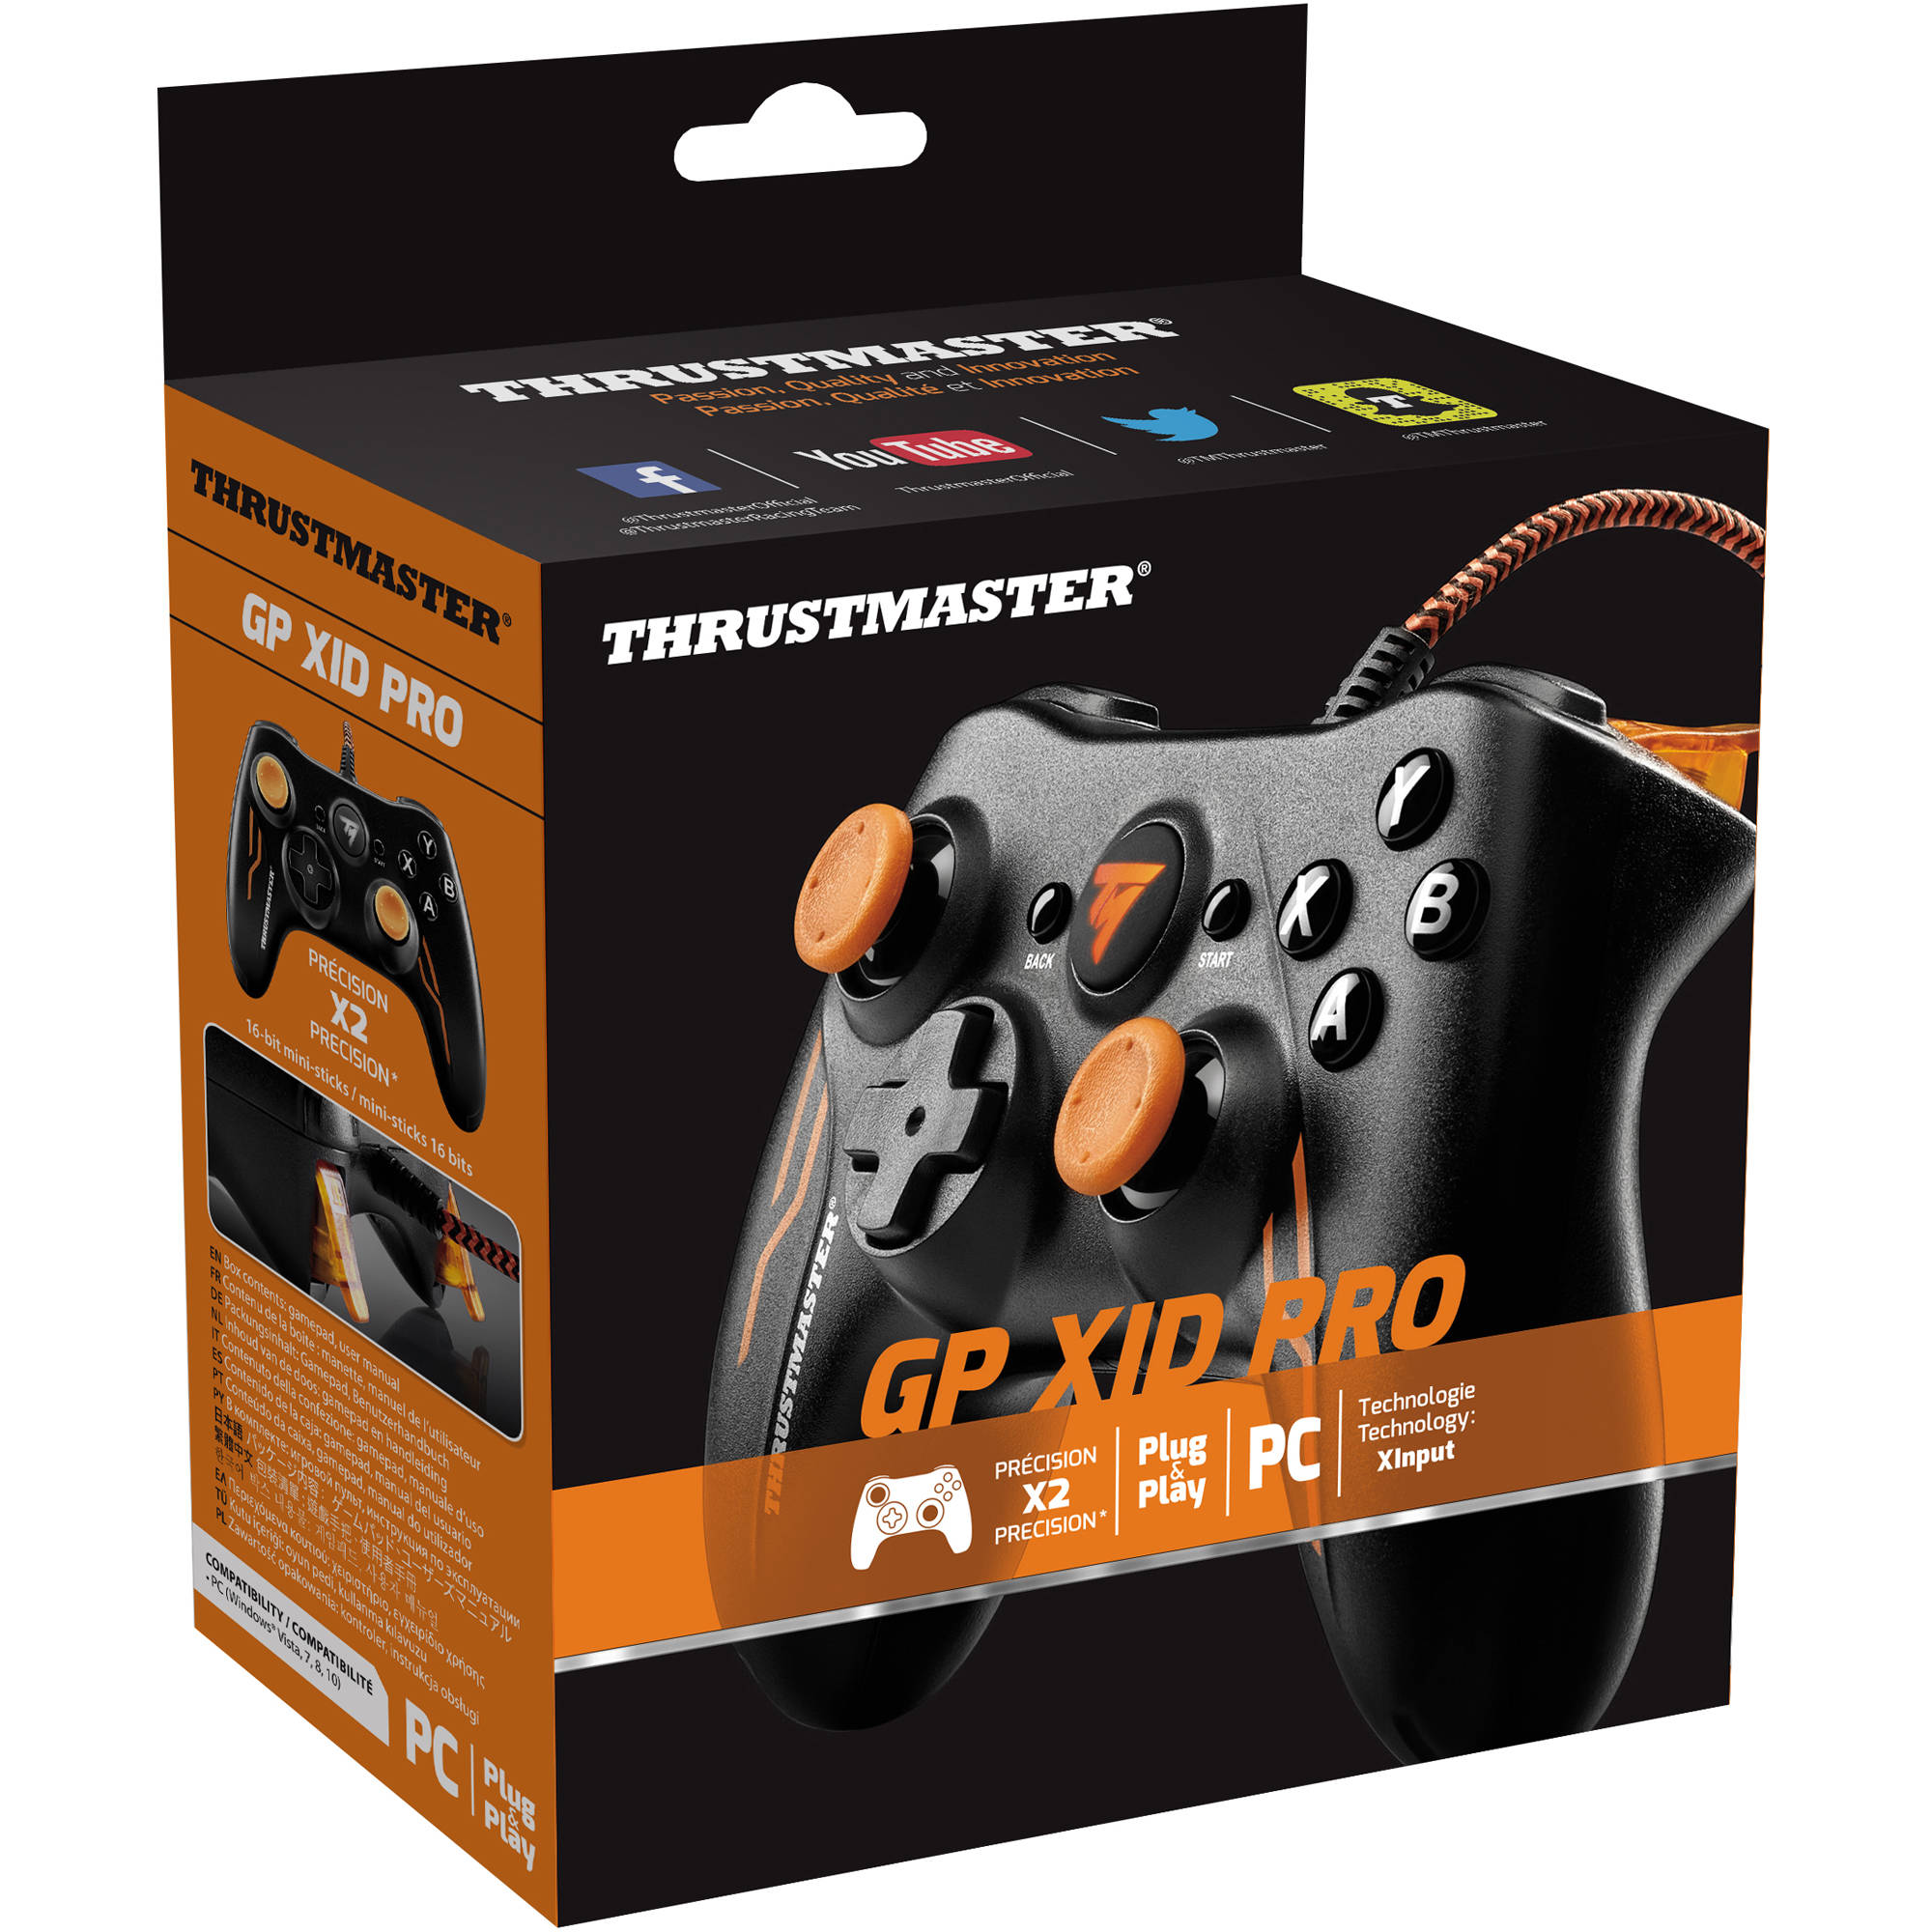 Thrustmaster GP XID Pro Wired Gamepad for PC